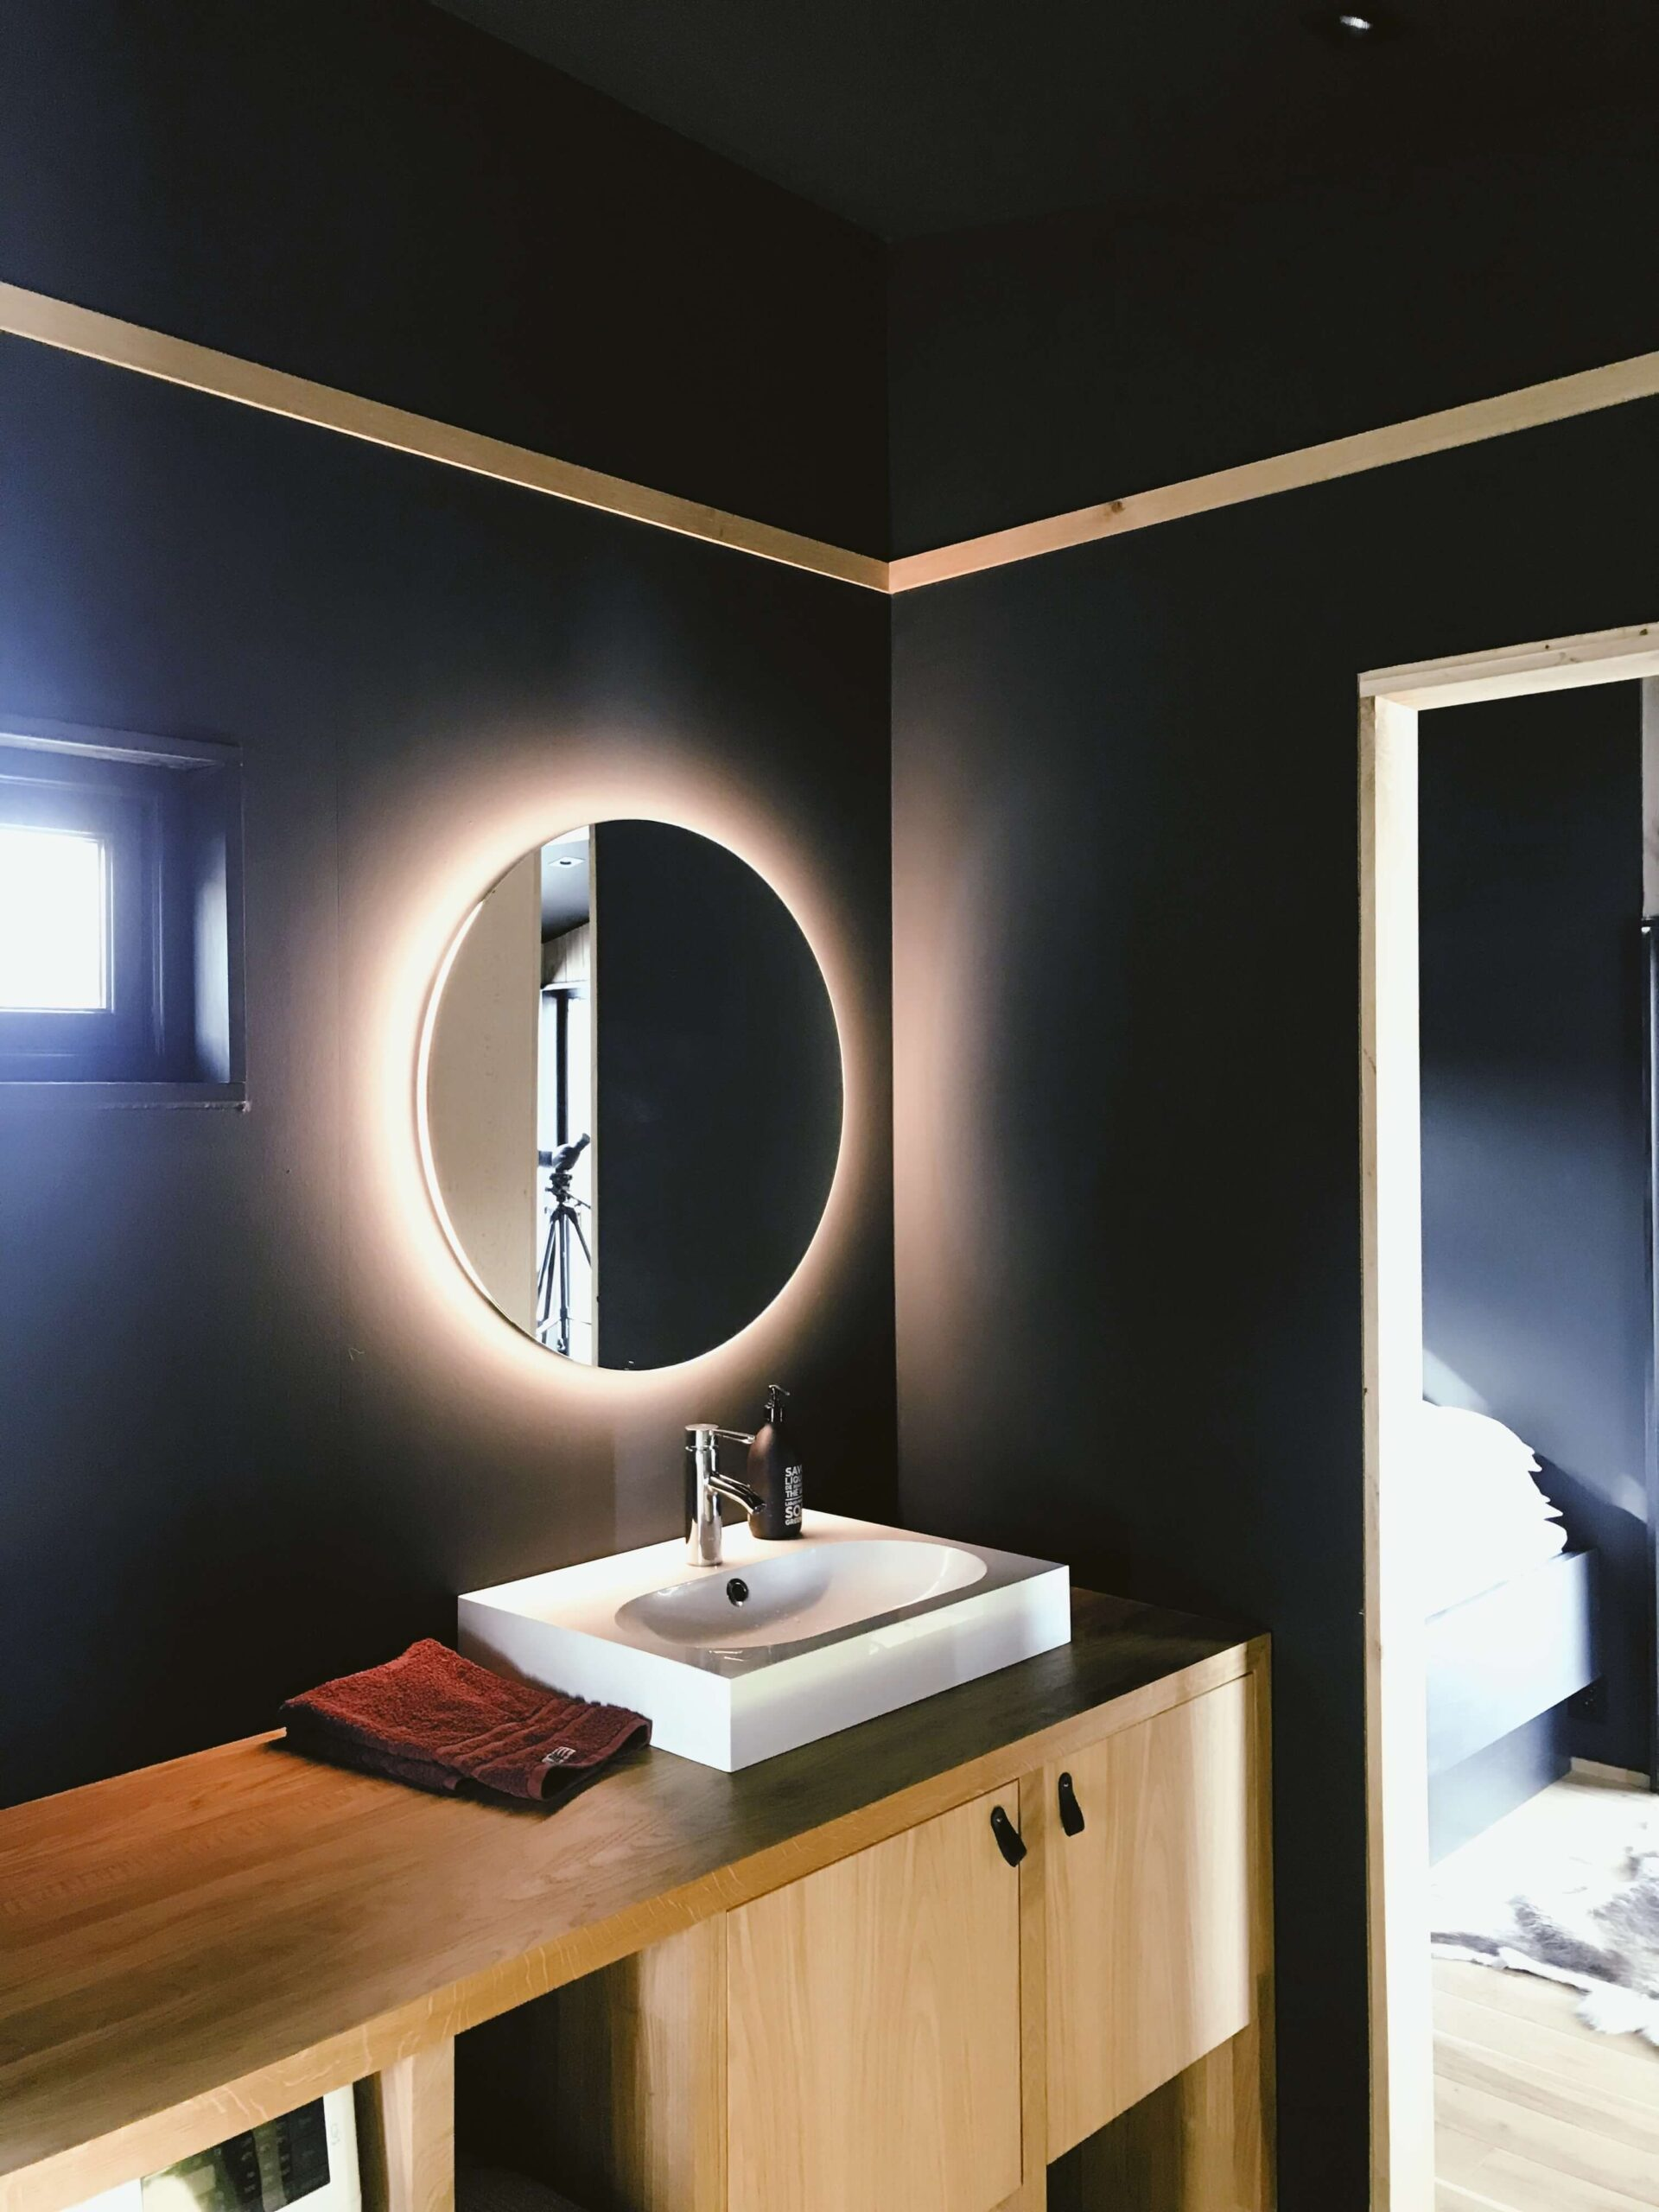 All You Need to Know About the Best Lighted Mirror by Mirrex